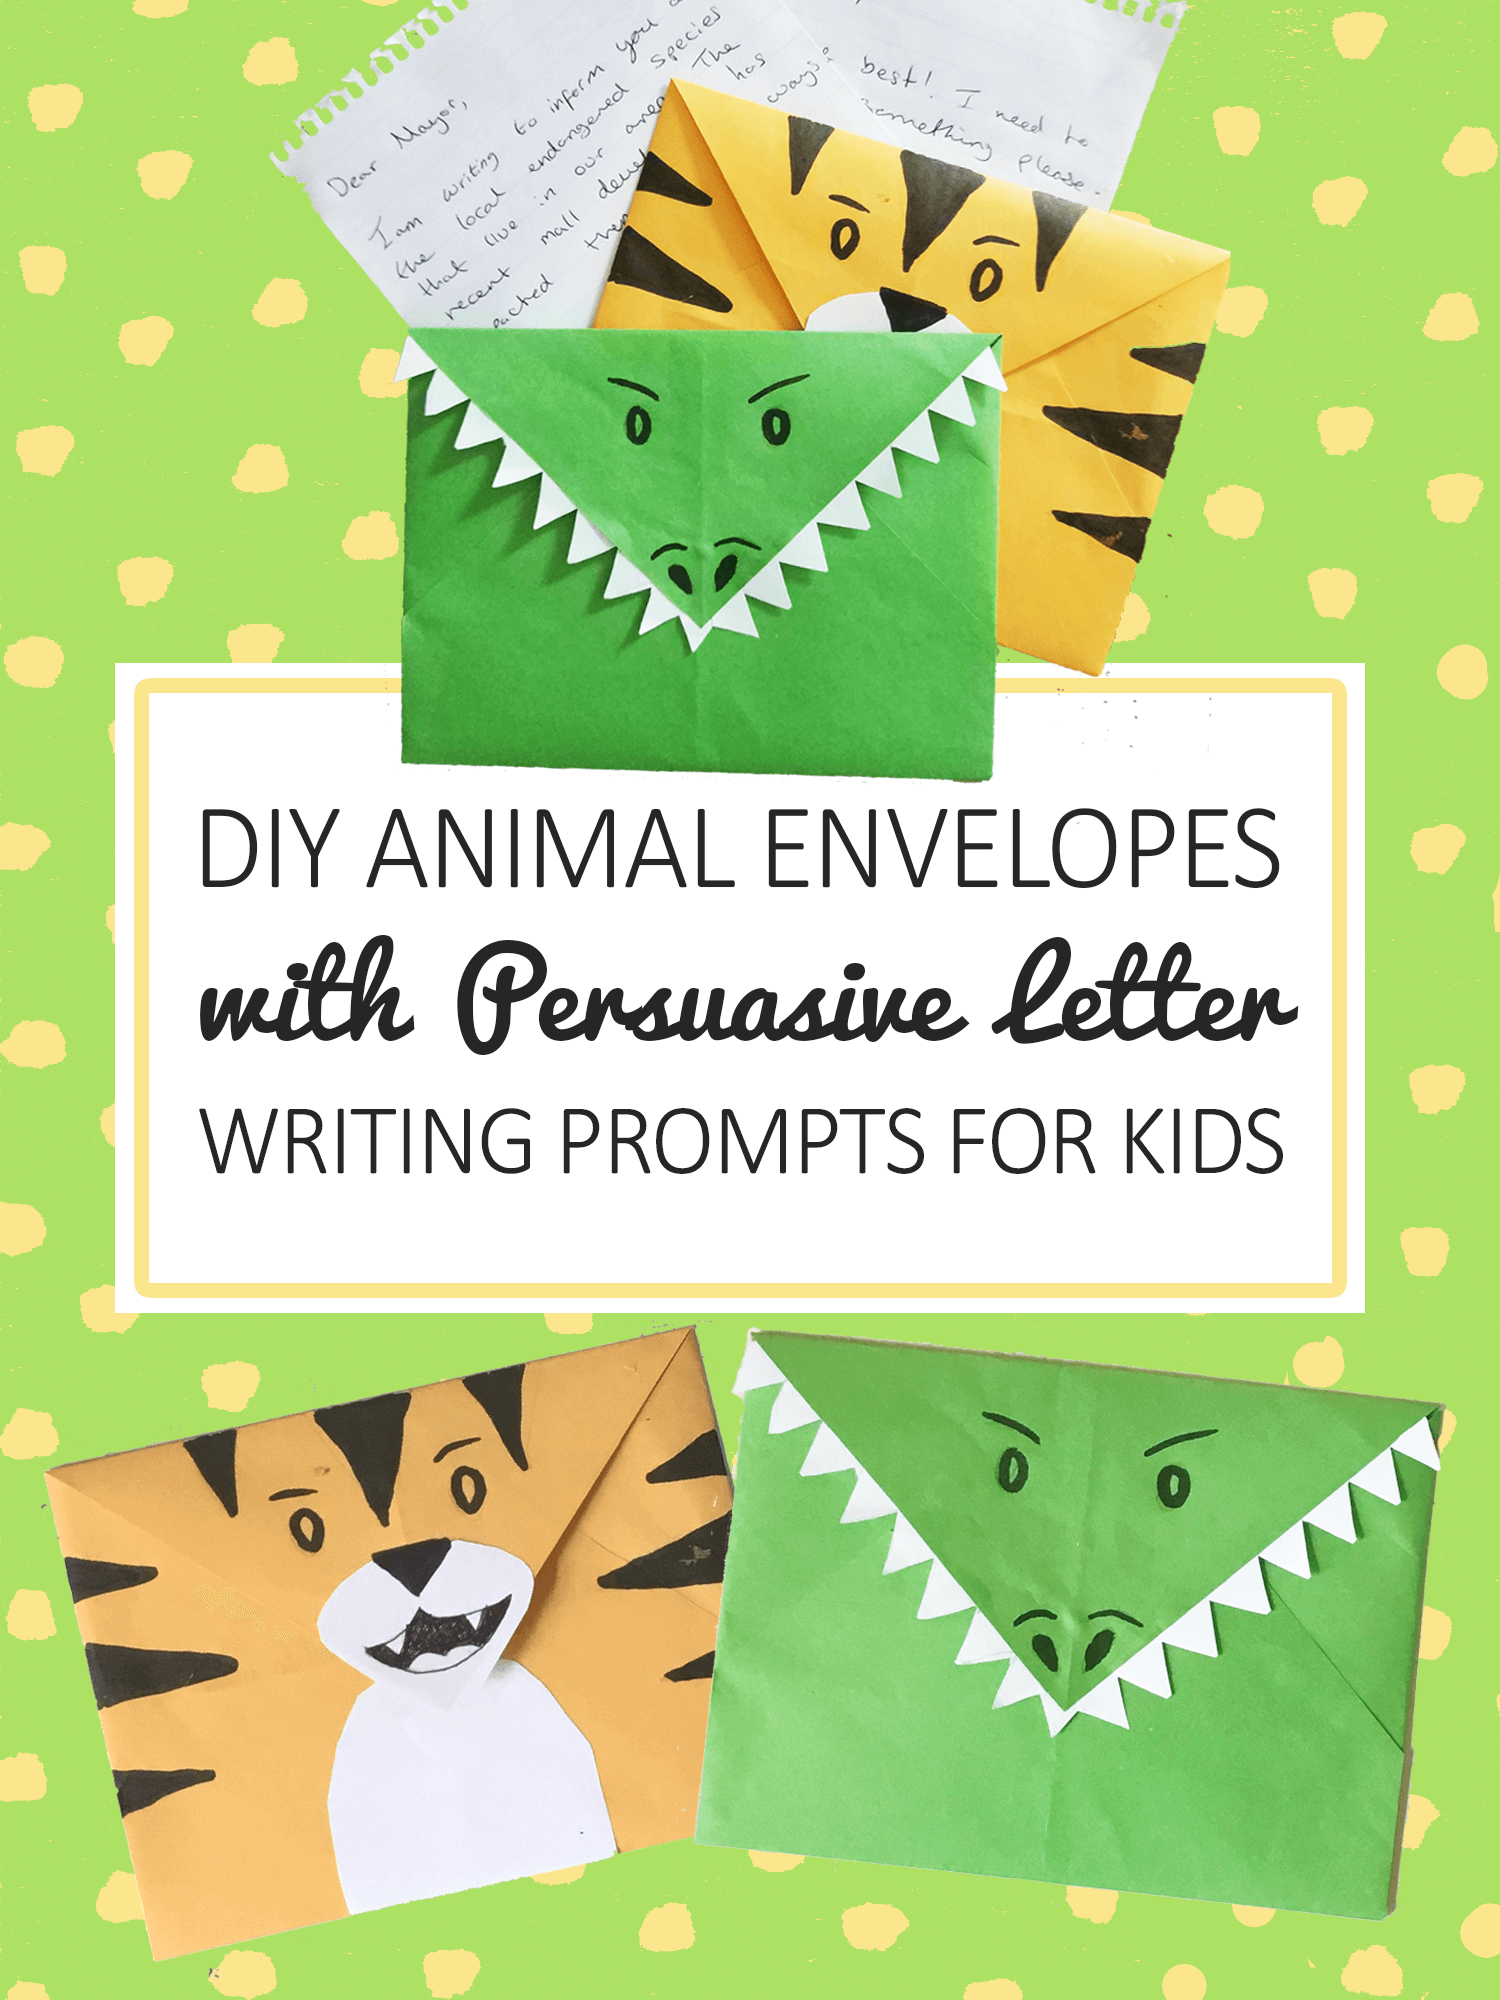 DIY Animal Envelopes tutorial with persuasive letter writing prompts for kids